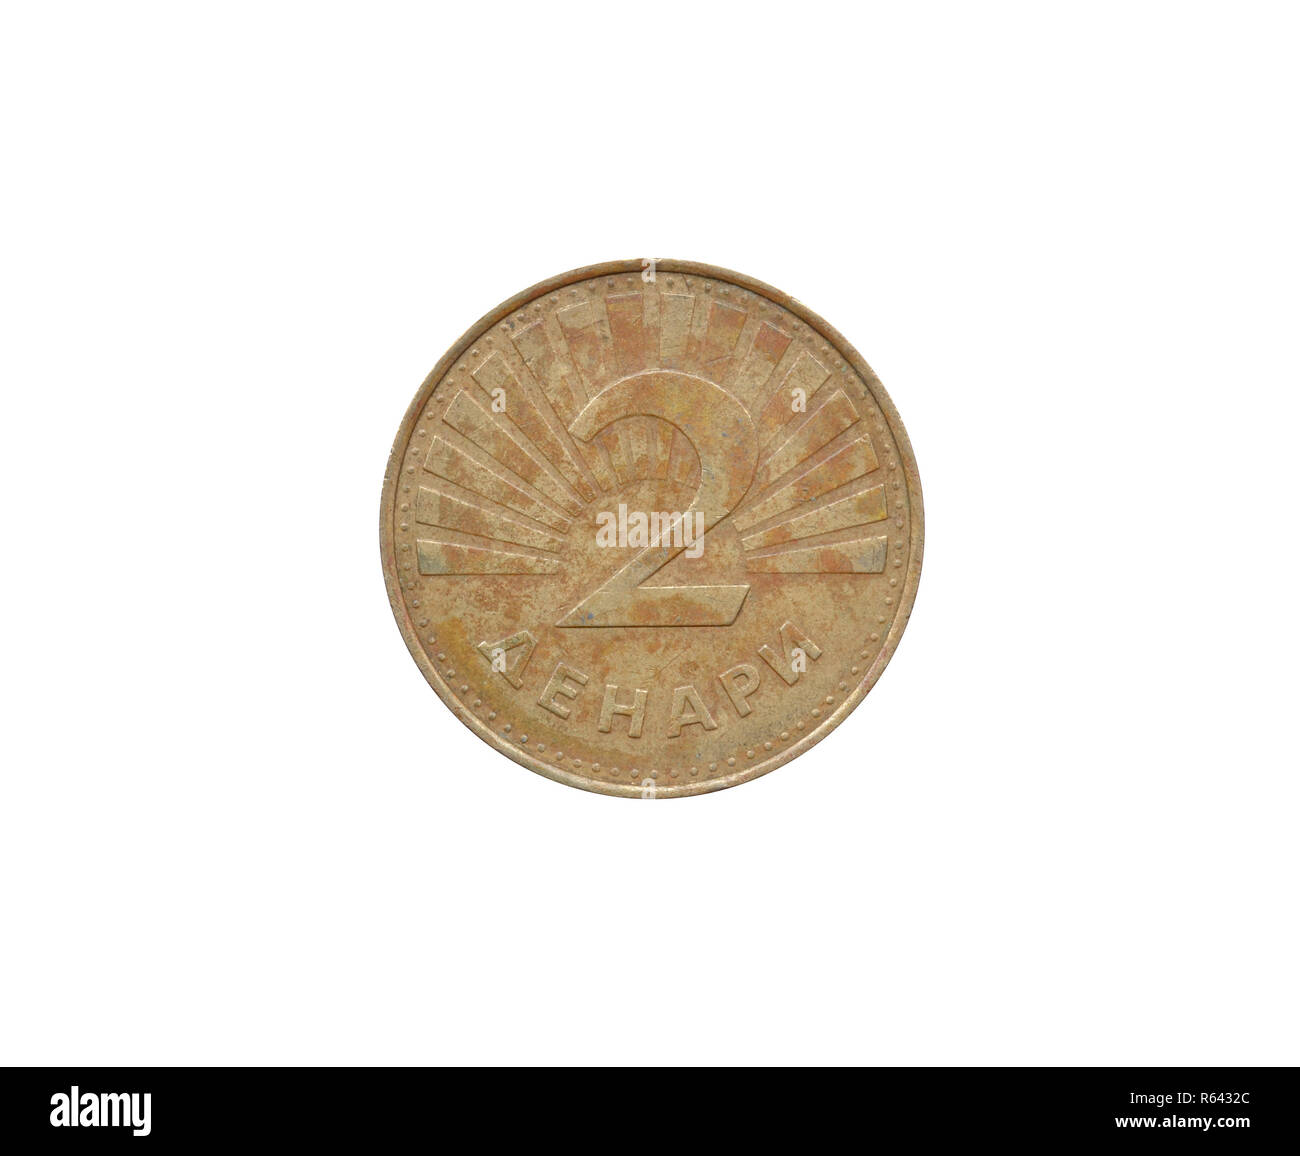 Reverse of 2 Denari coin made by Macedonia, that shows Radiant value - Stock Image